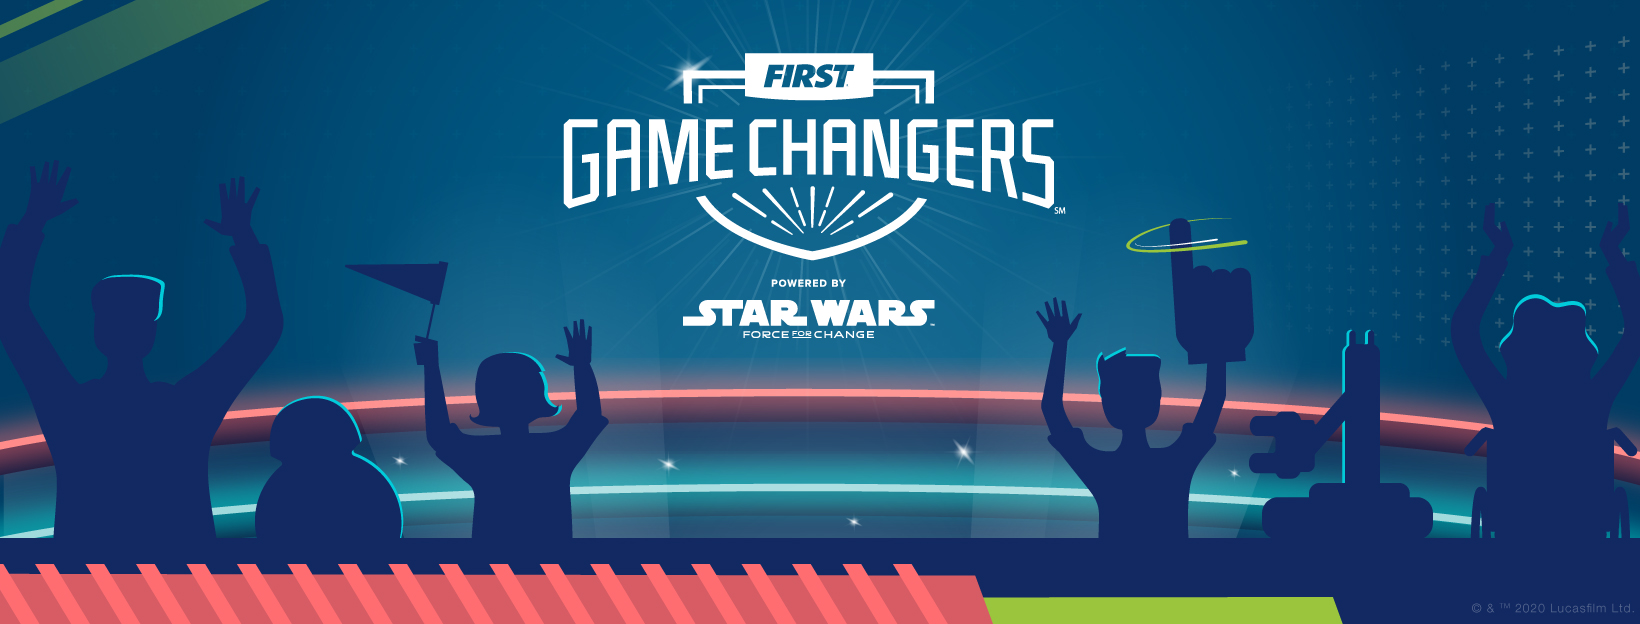 First Game Changers Powered by Star Wars Force for Change